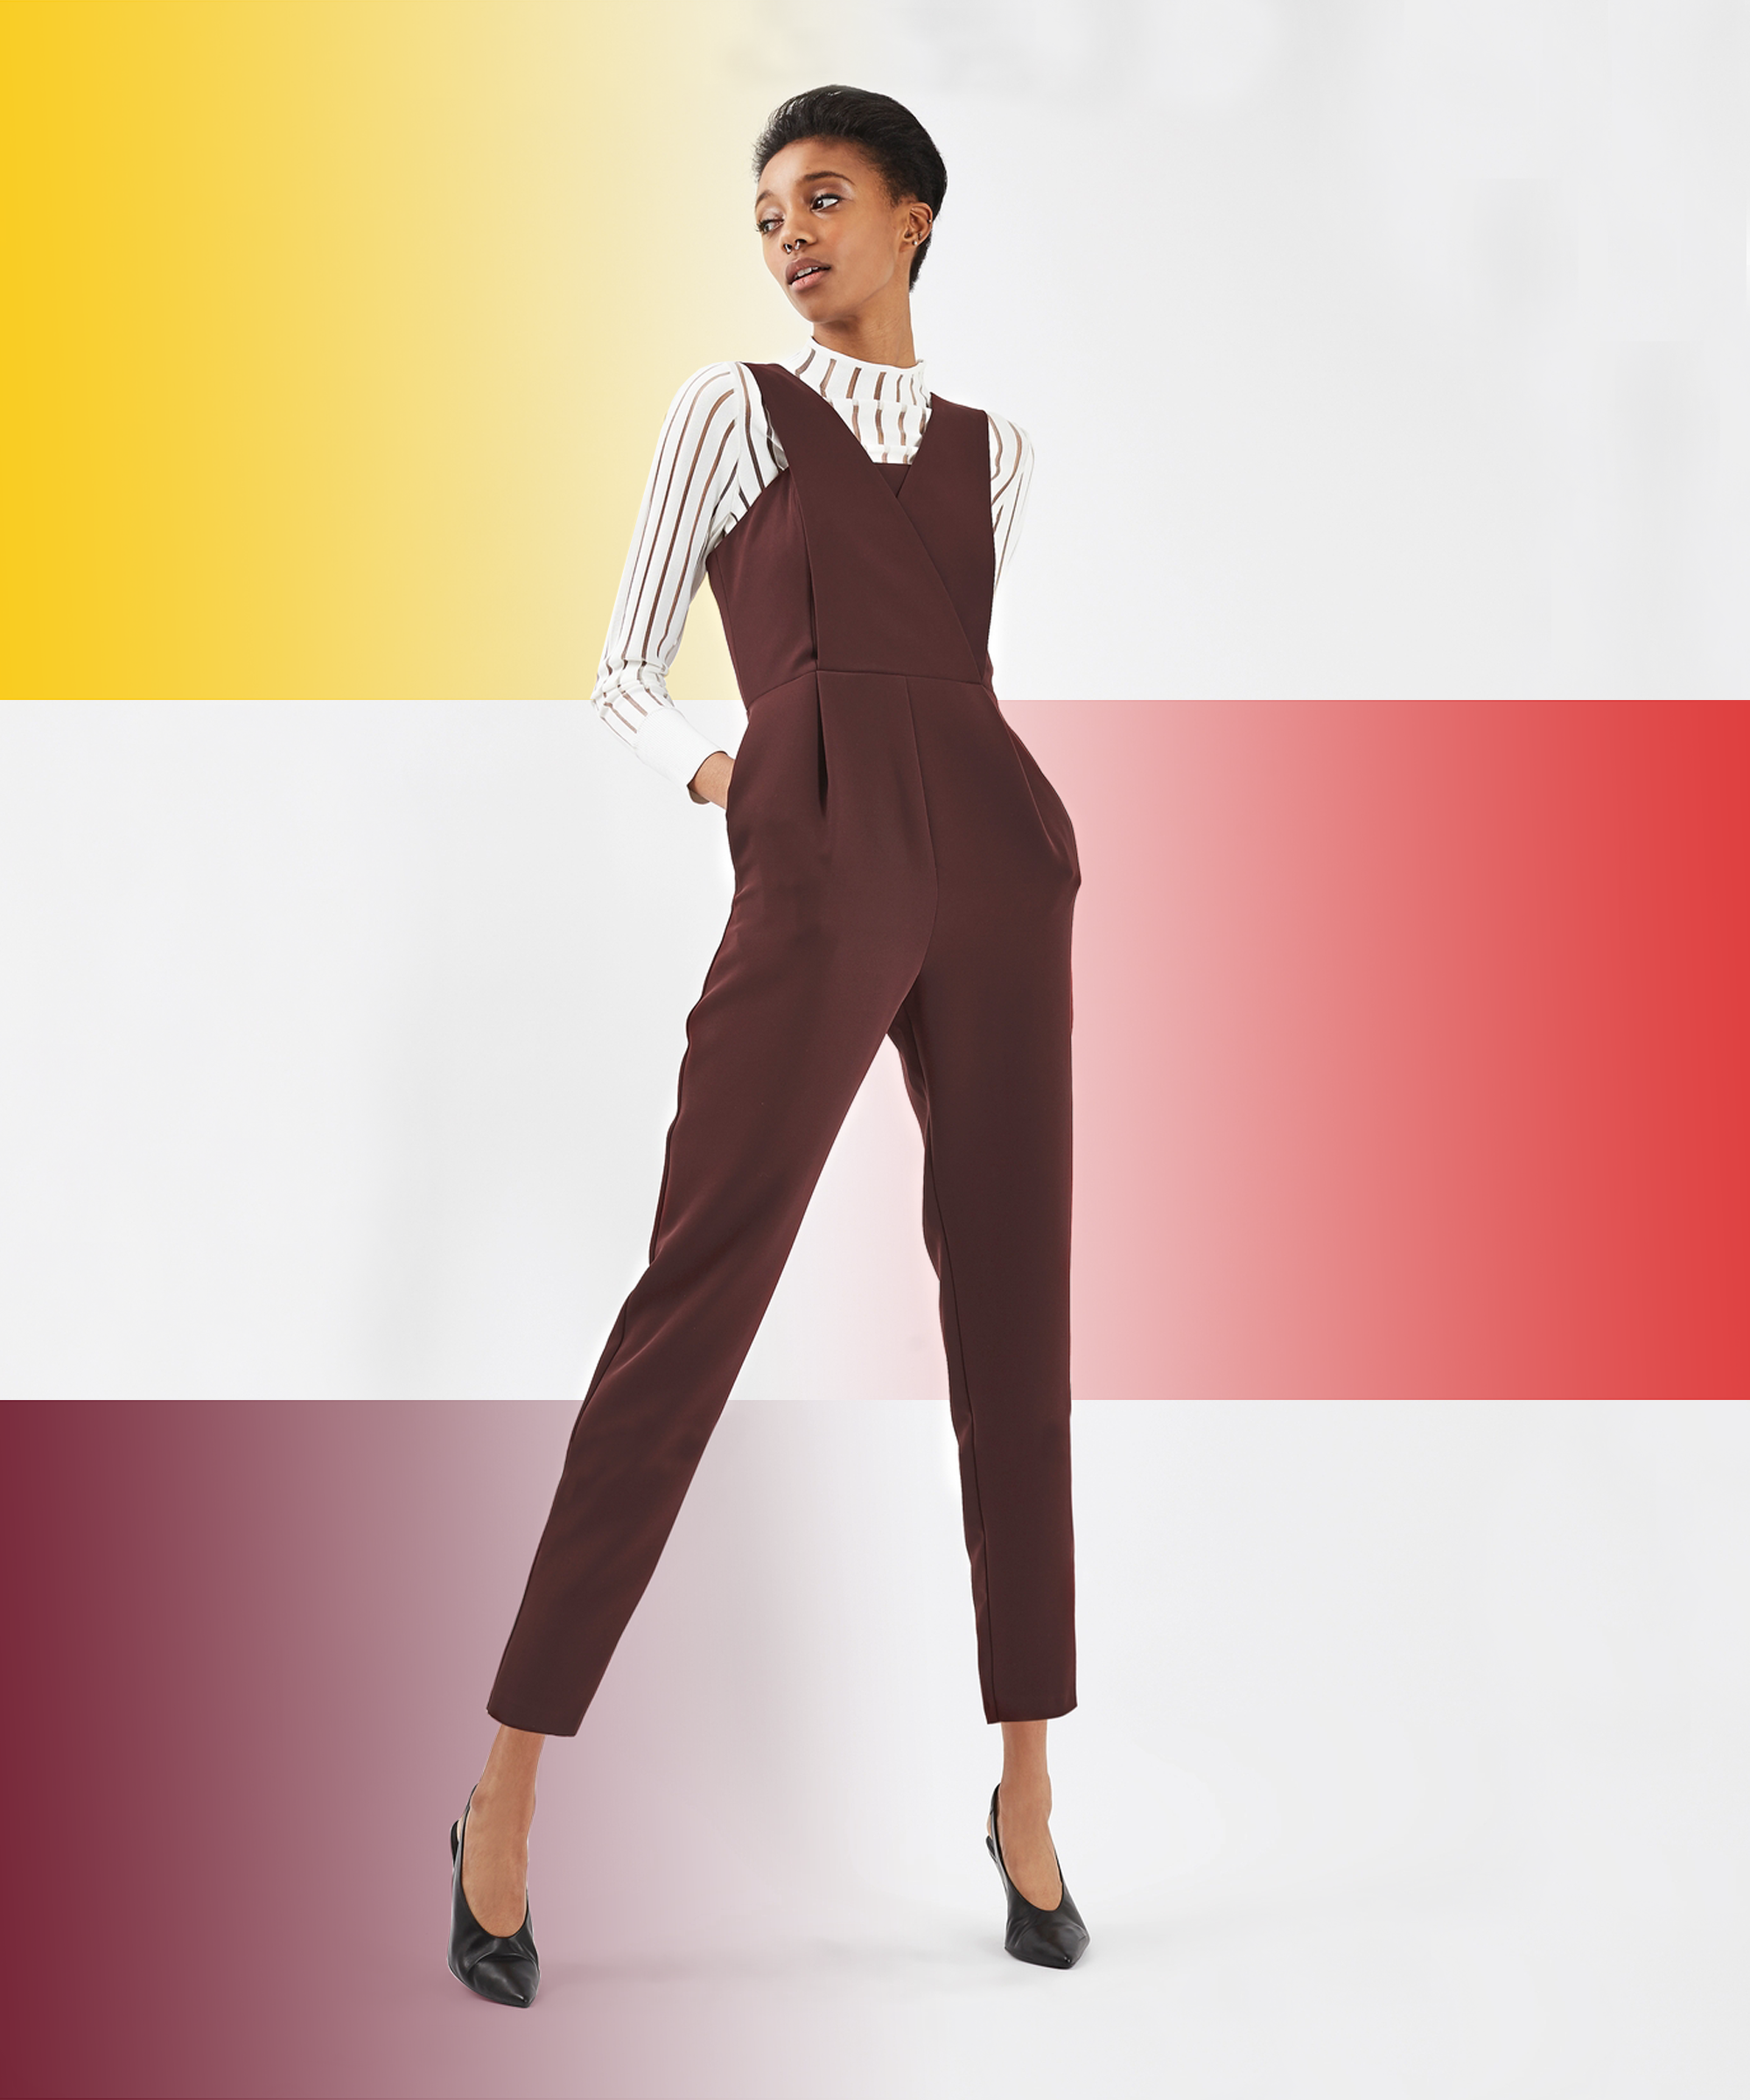 699f22ef8e23 15 Jumpsuits You Can Totally Wear To The Office